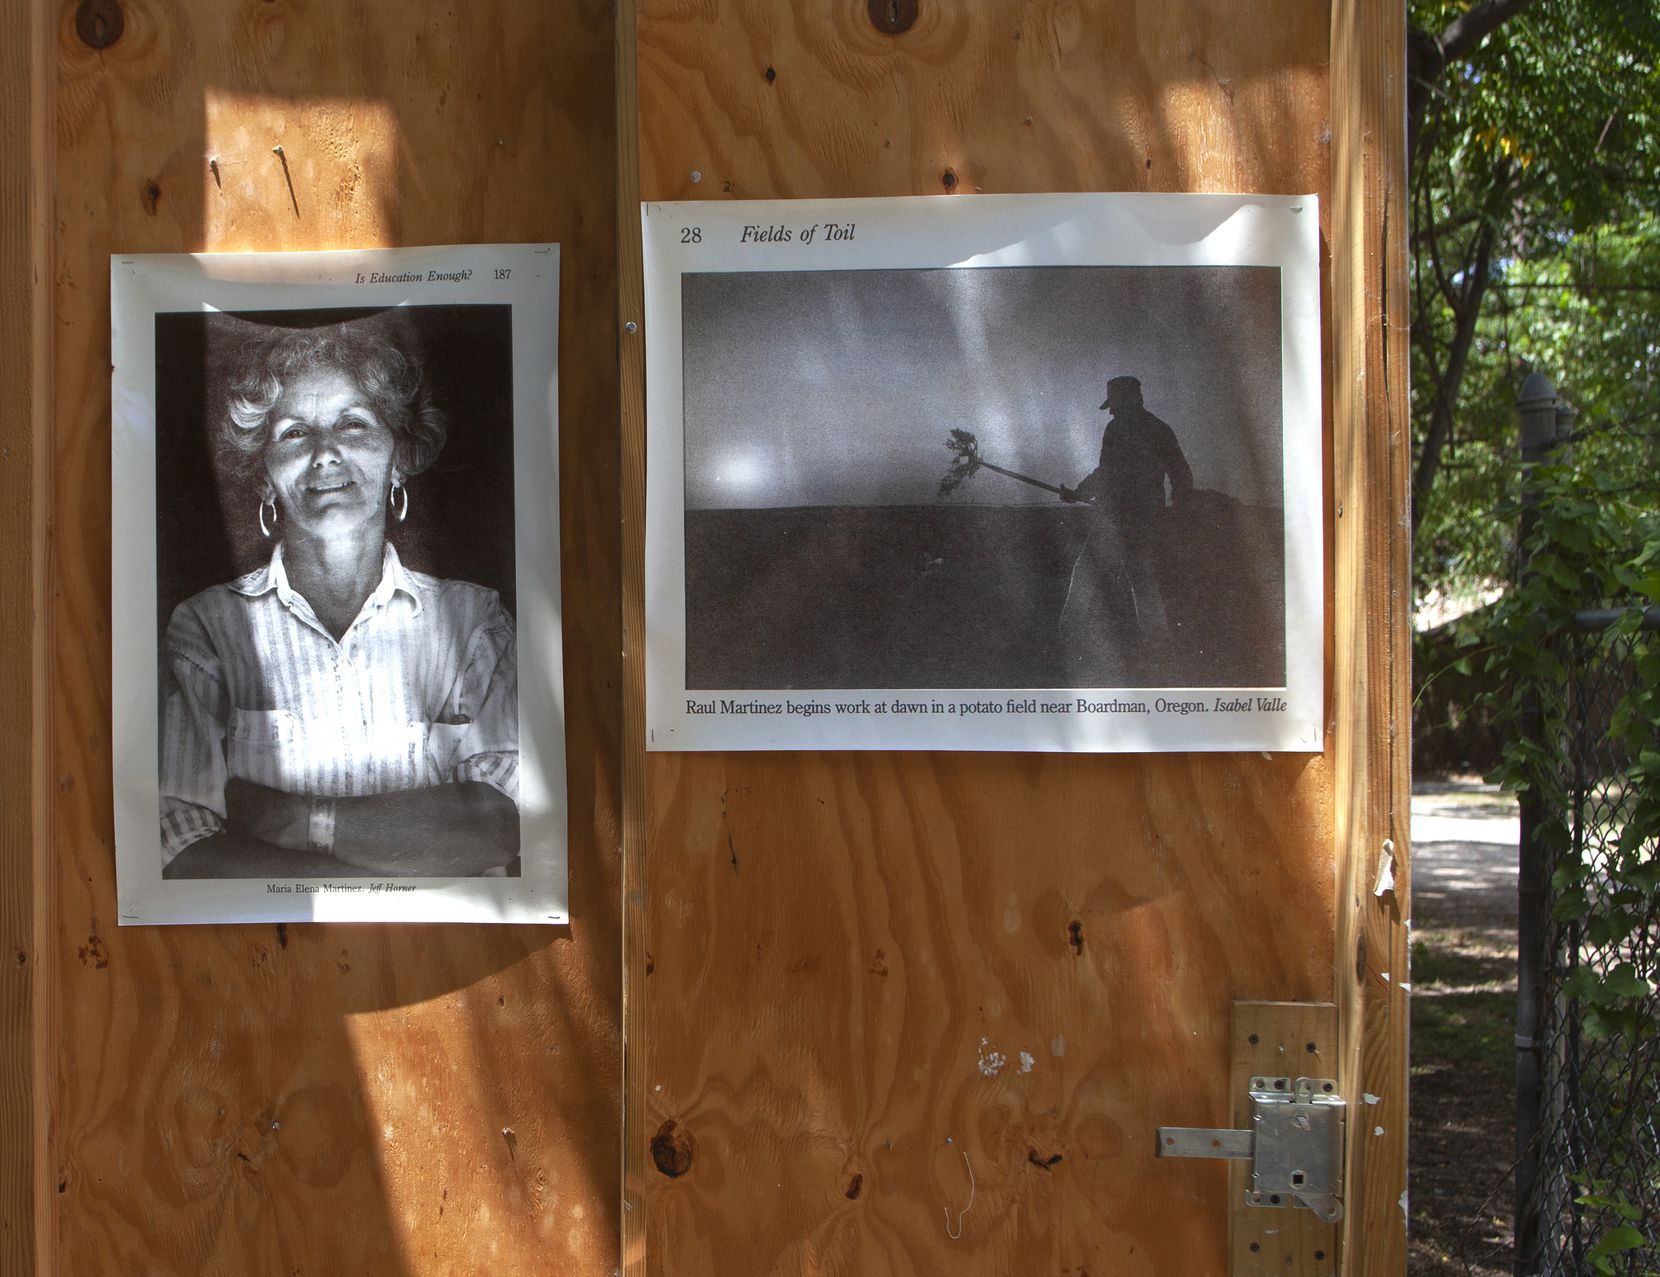 Photographs of (from left) Maria Elena Martinez (by Jeff Horner) and Raul Martinez (by Isabel Valle) taken of the grandparents of Leslie Martinez, from the book 'Fields of Toil: A Migrant Family's Journey' by Isabel Valle.  Reporter Isabel Valle spent an entire year with this migrant family reporting on life with a migrant family as they resided and worked in the Inland Pacific Northwest and South Texas.